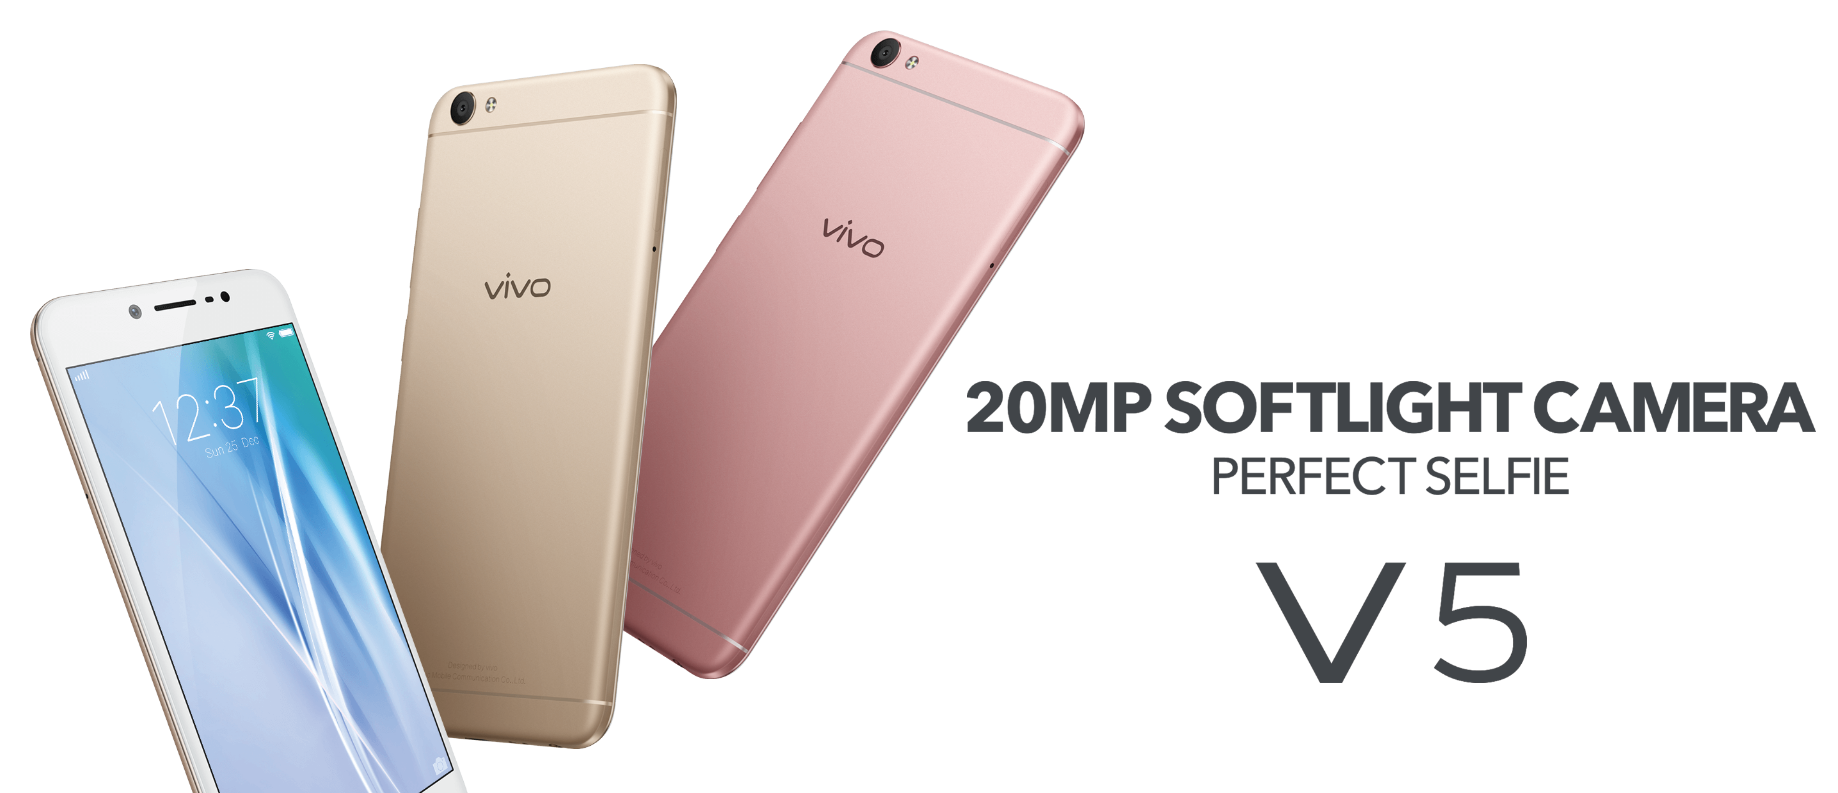 Vivo V5 packs 20MP front camera for perfect selfies